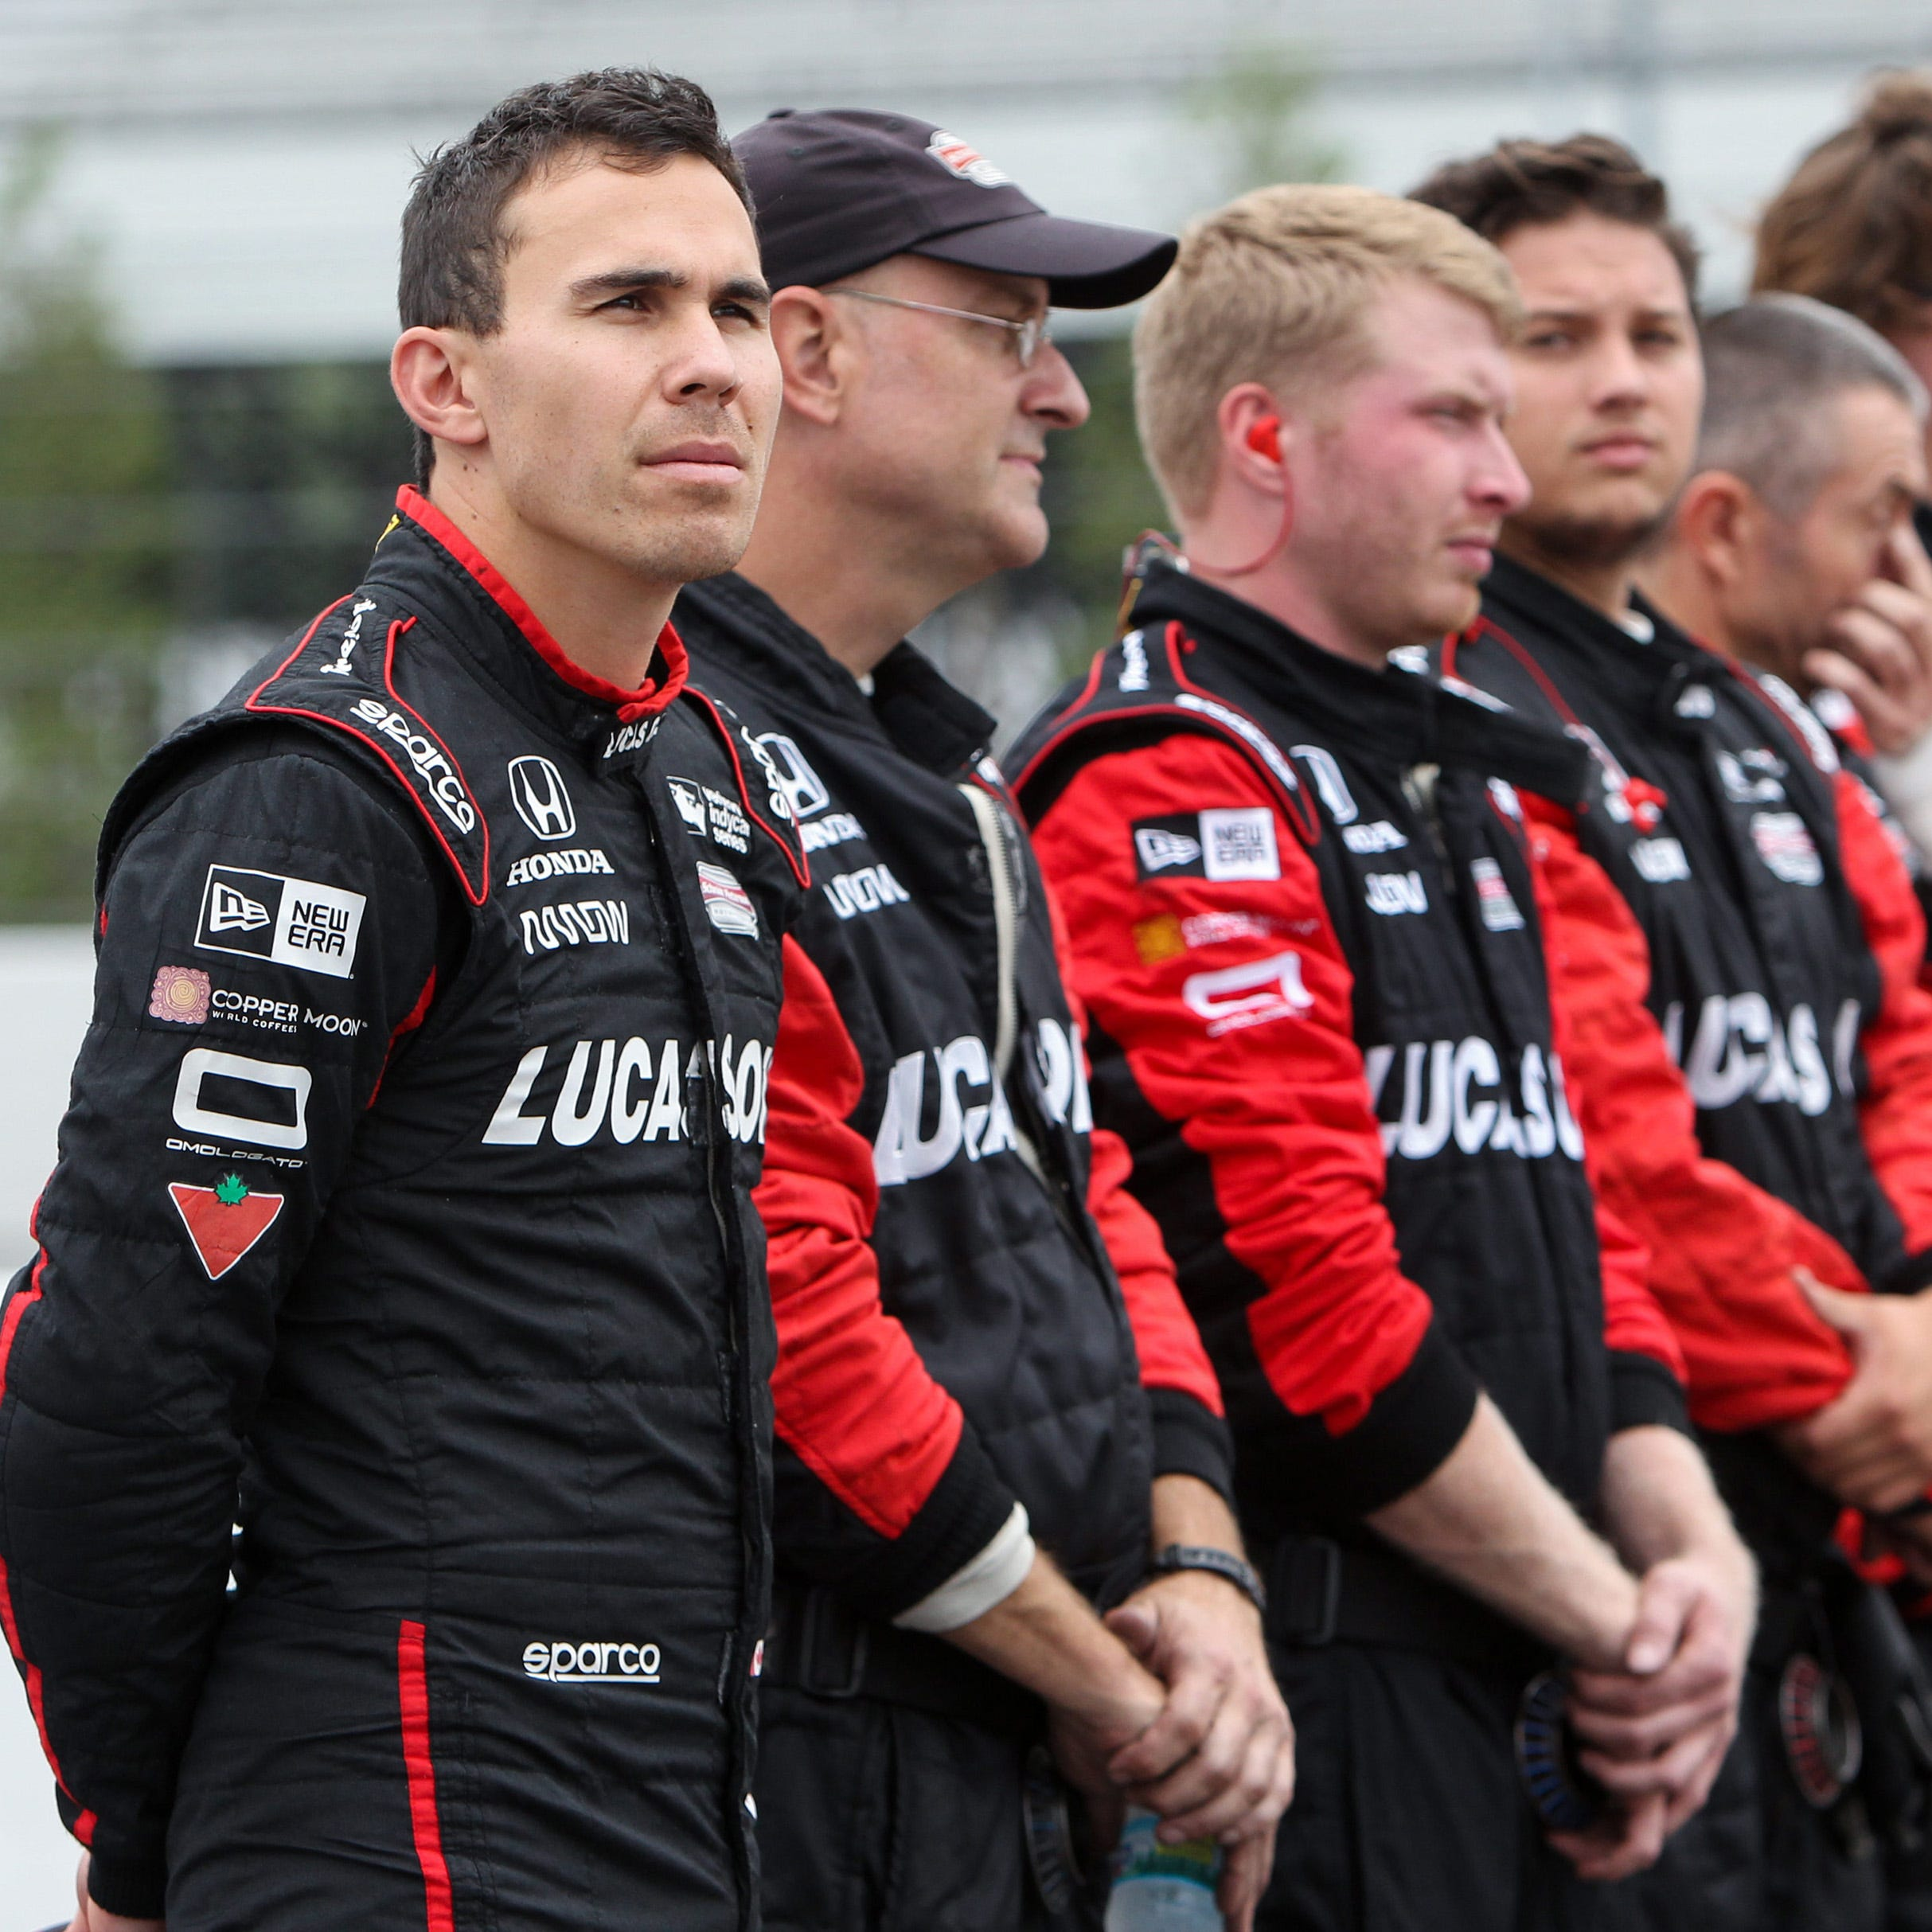 IndyCar driver Robert Wickens sent to hospital after violent early crash